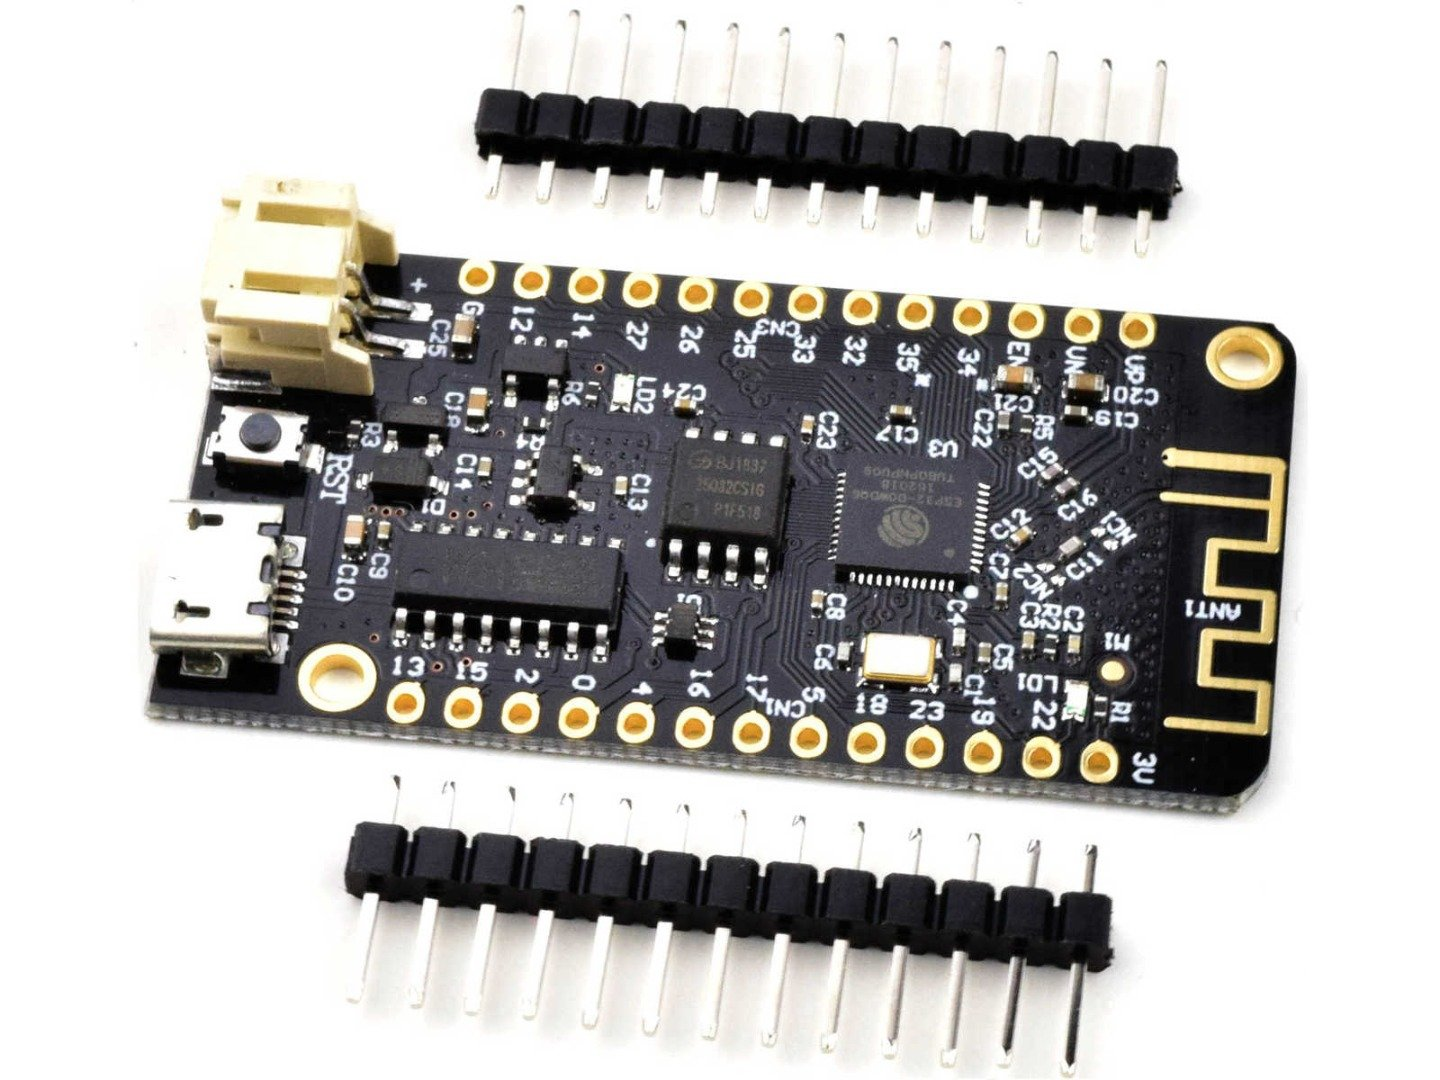 ESP32 LOLIN32 Lite MicroPython version with Battery Charger